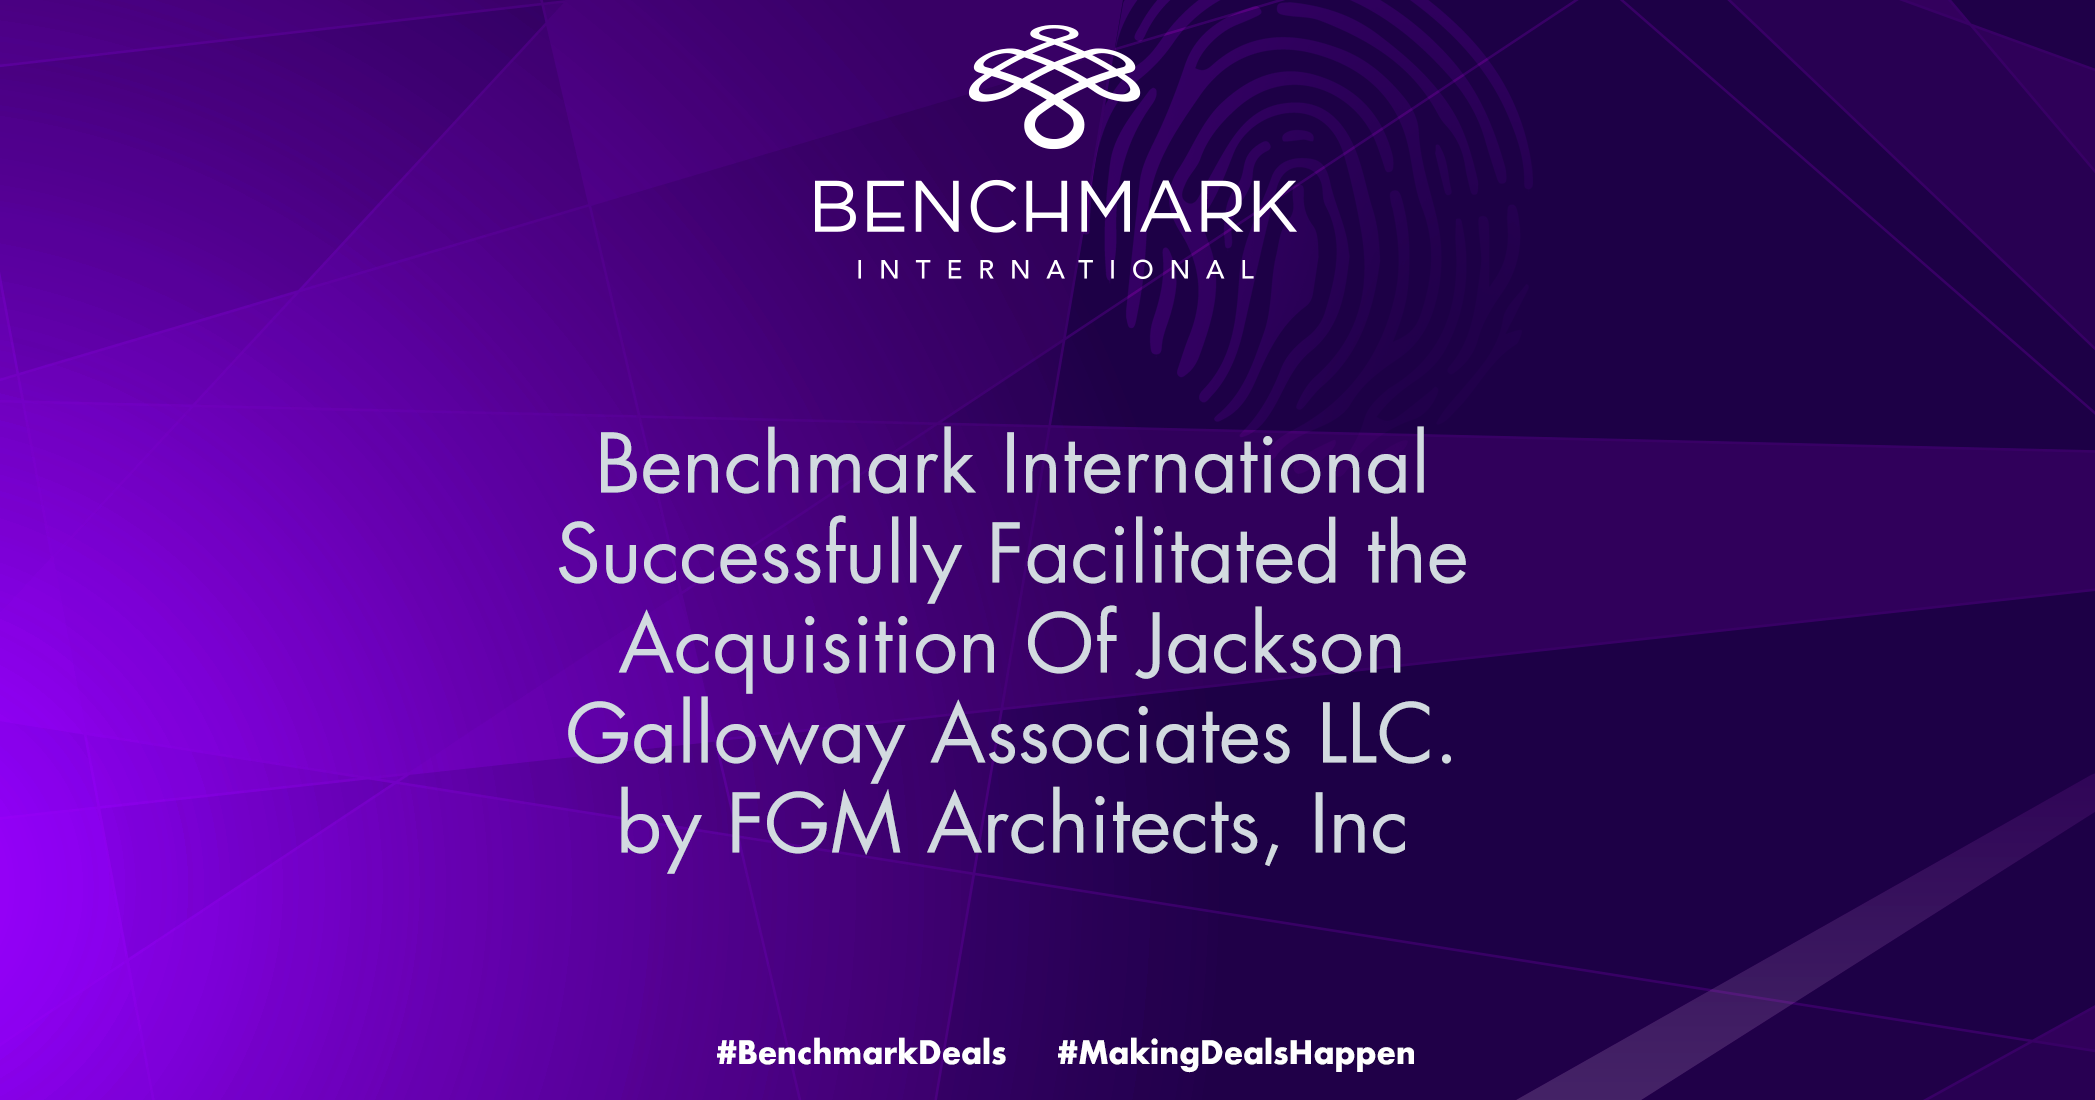 Benchmark International Successfully Facilitated The Acquisition of Jackson Galloway Associates LLC. by FGM Architects, Inc